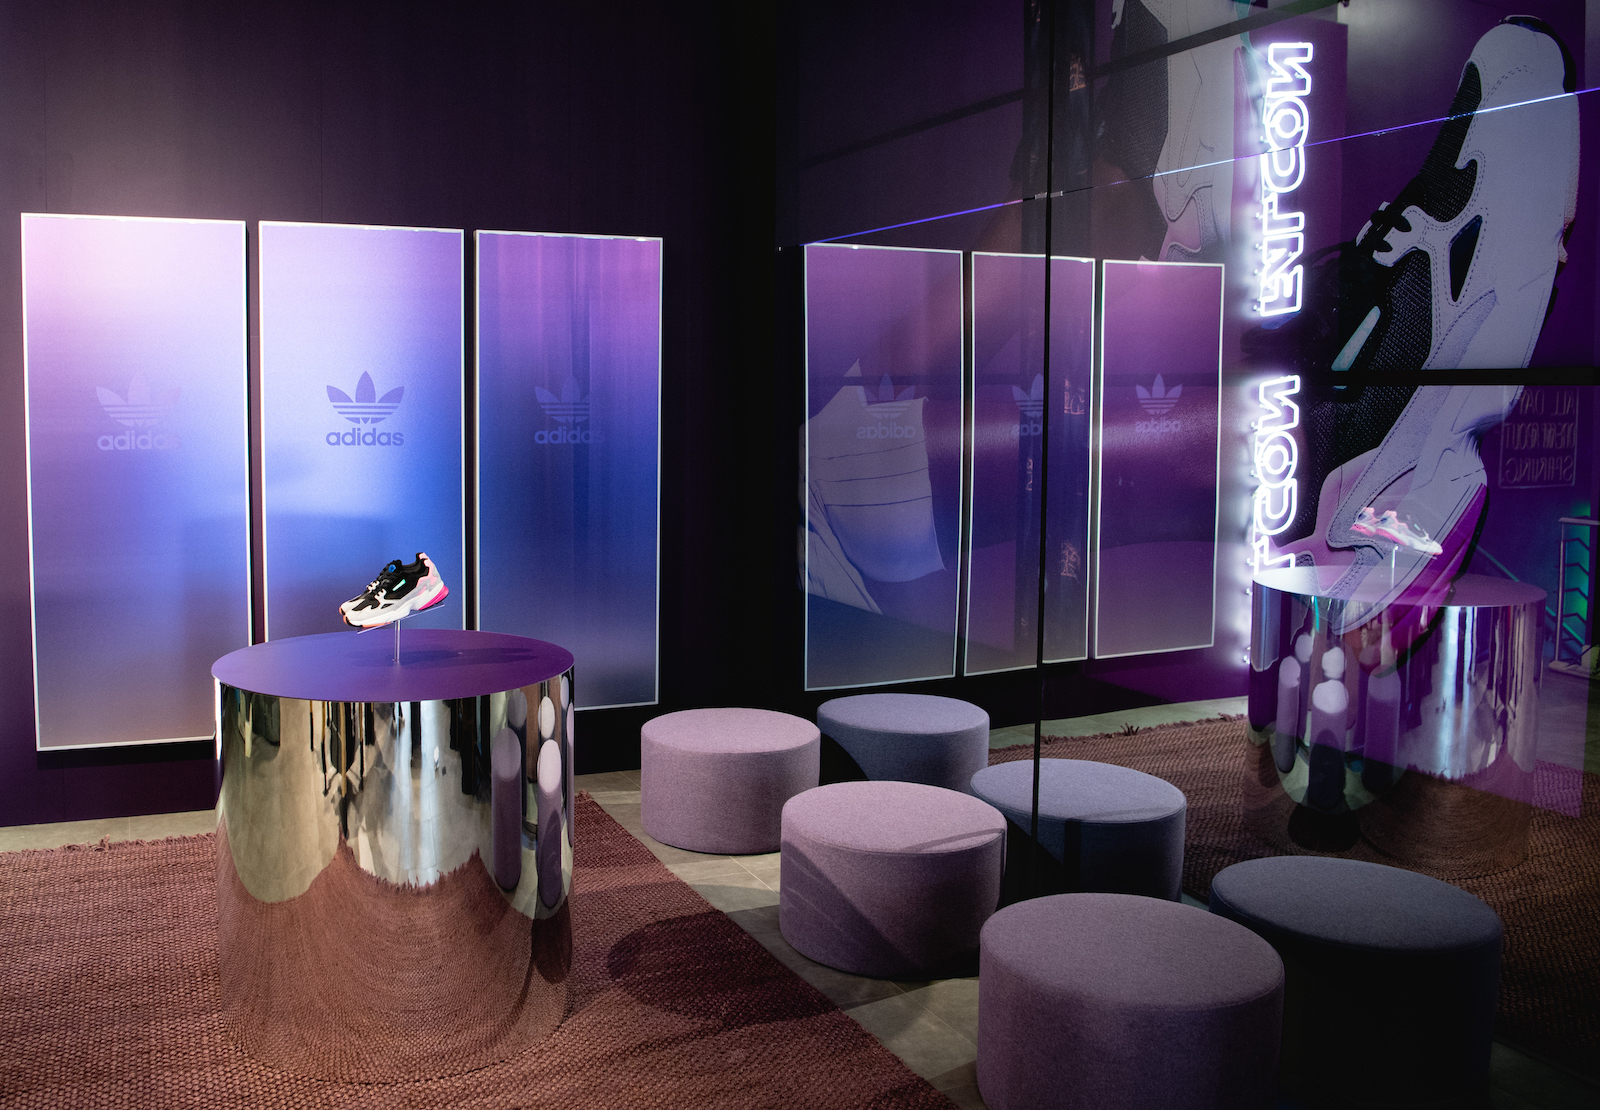 A  retail buildout with purple fogged glass, Falcon in neon, with shoes popped off a reflective cylinder pedestal.